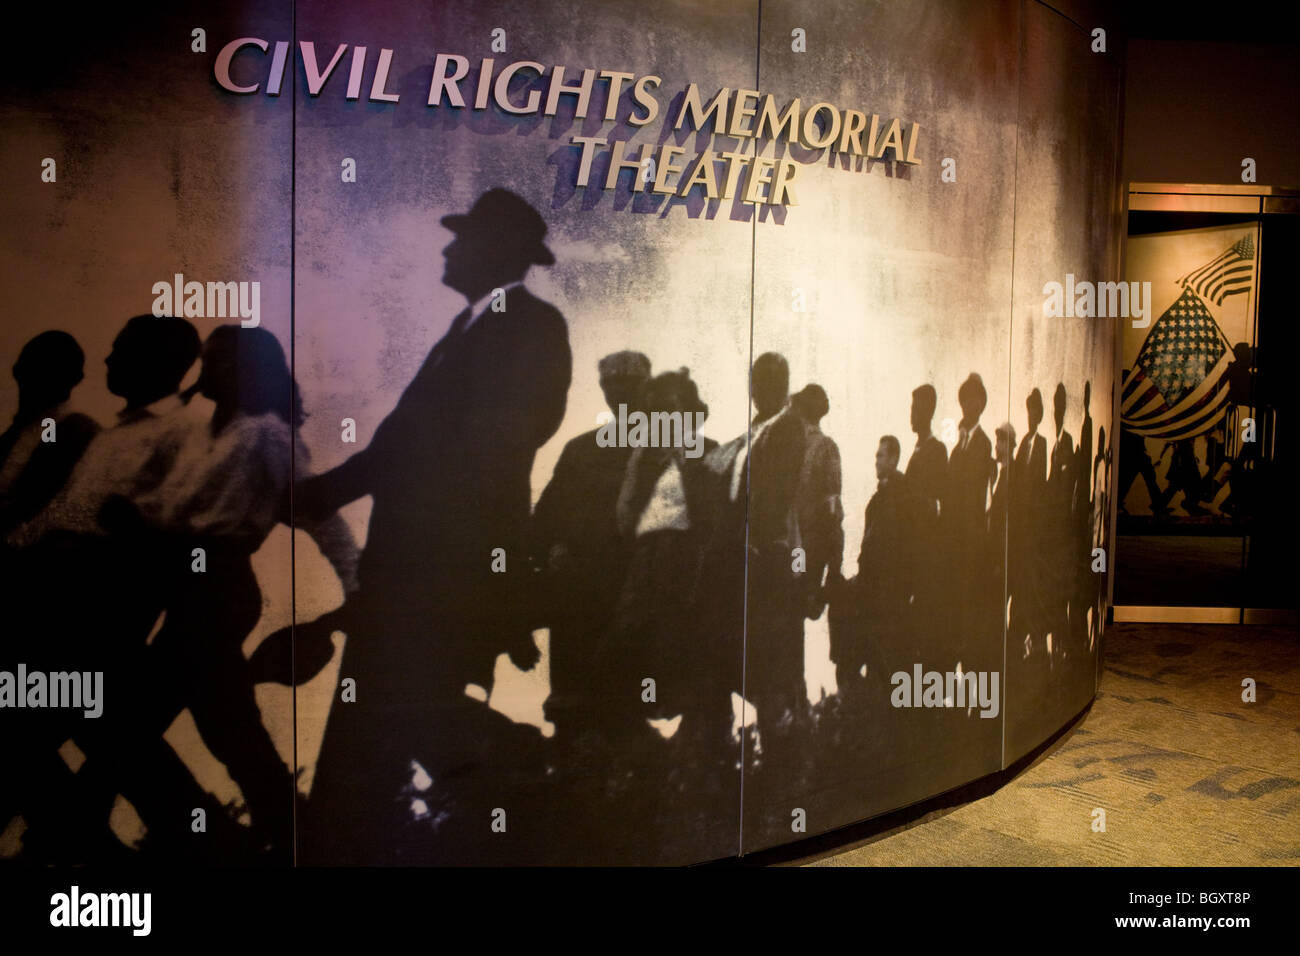 Inside Civil Rights Memorial Center, Montgomery, Alabama - Stock Image